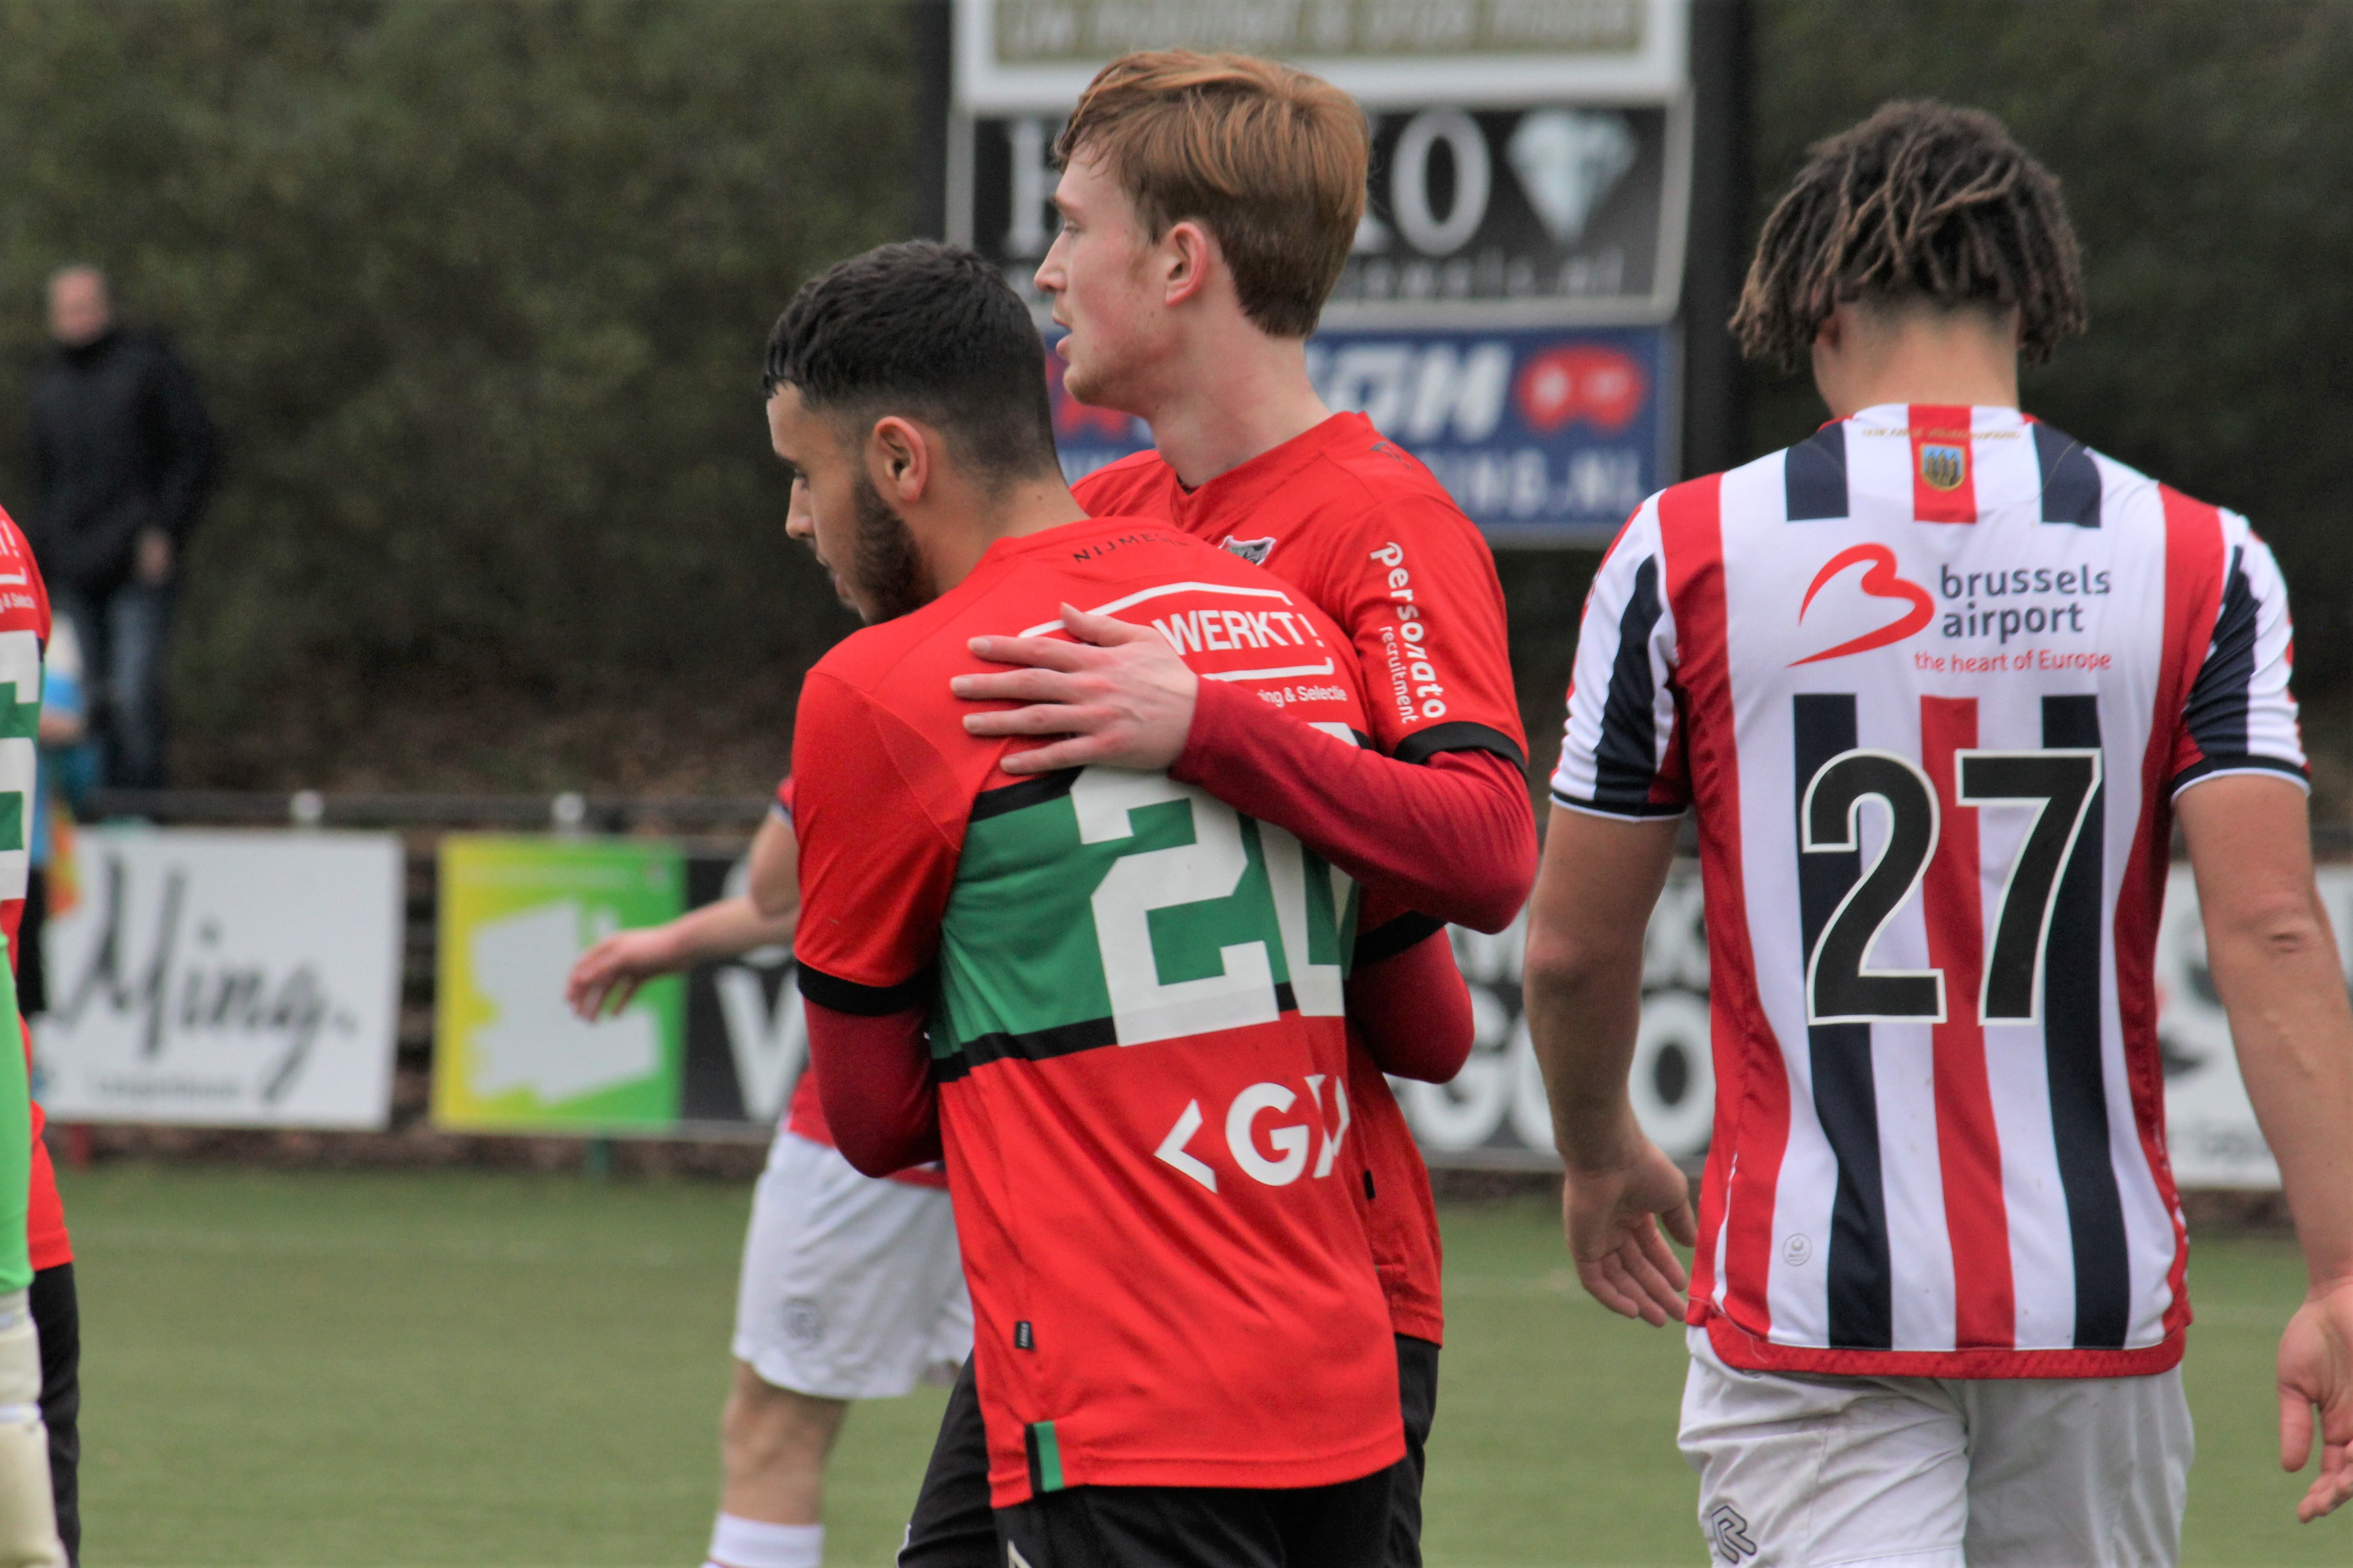 Valse start voor Jong N.E.C.